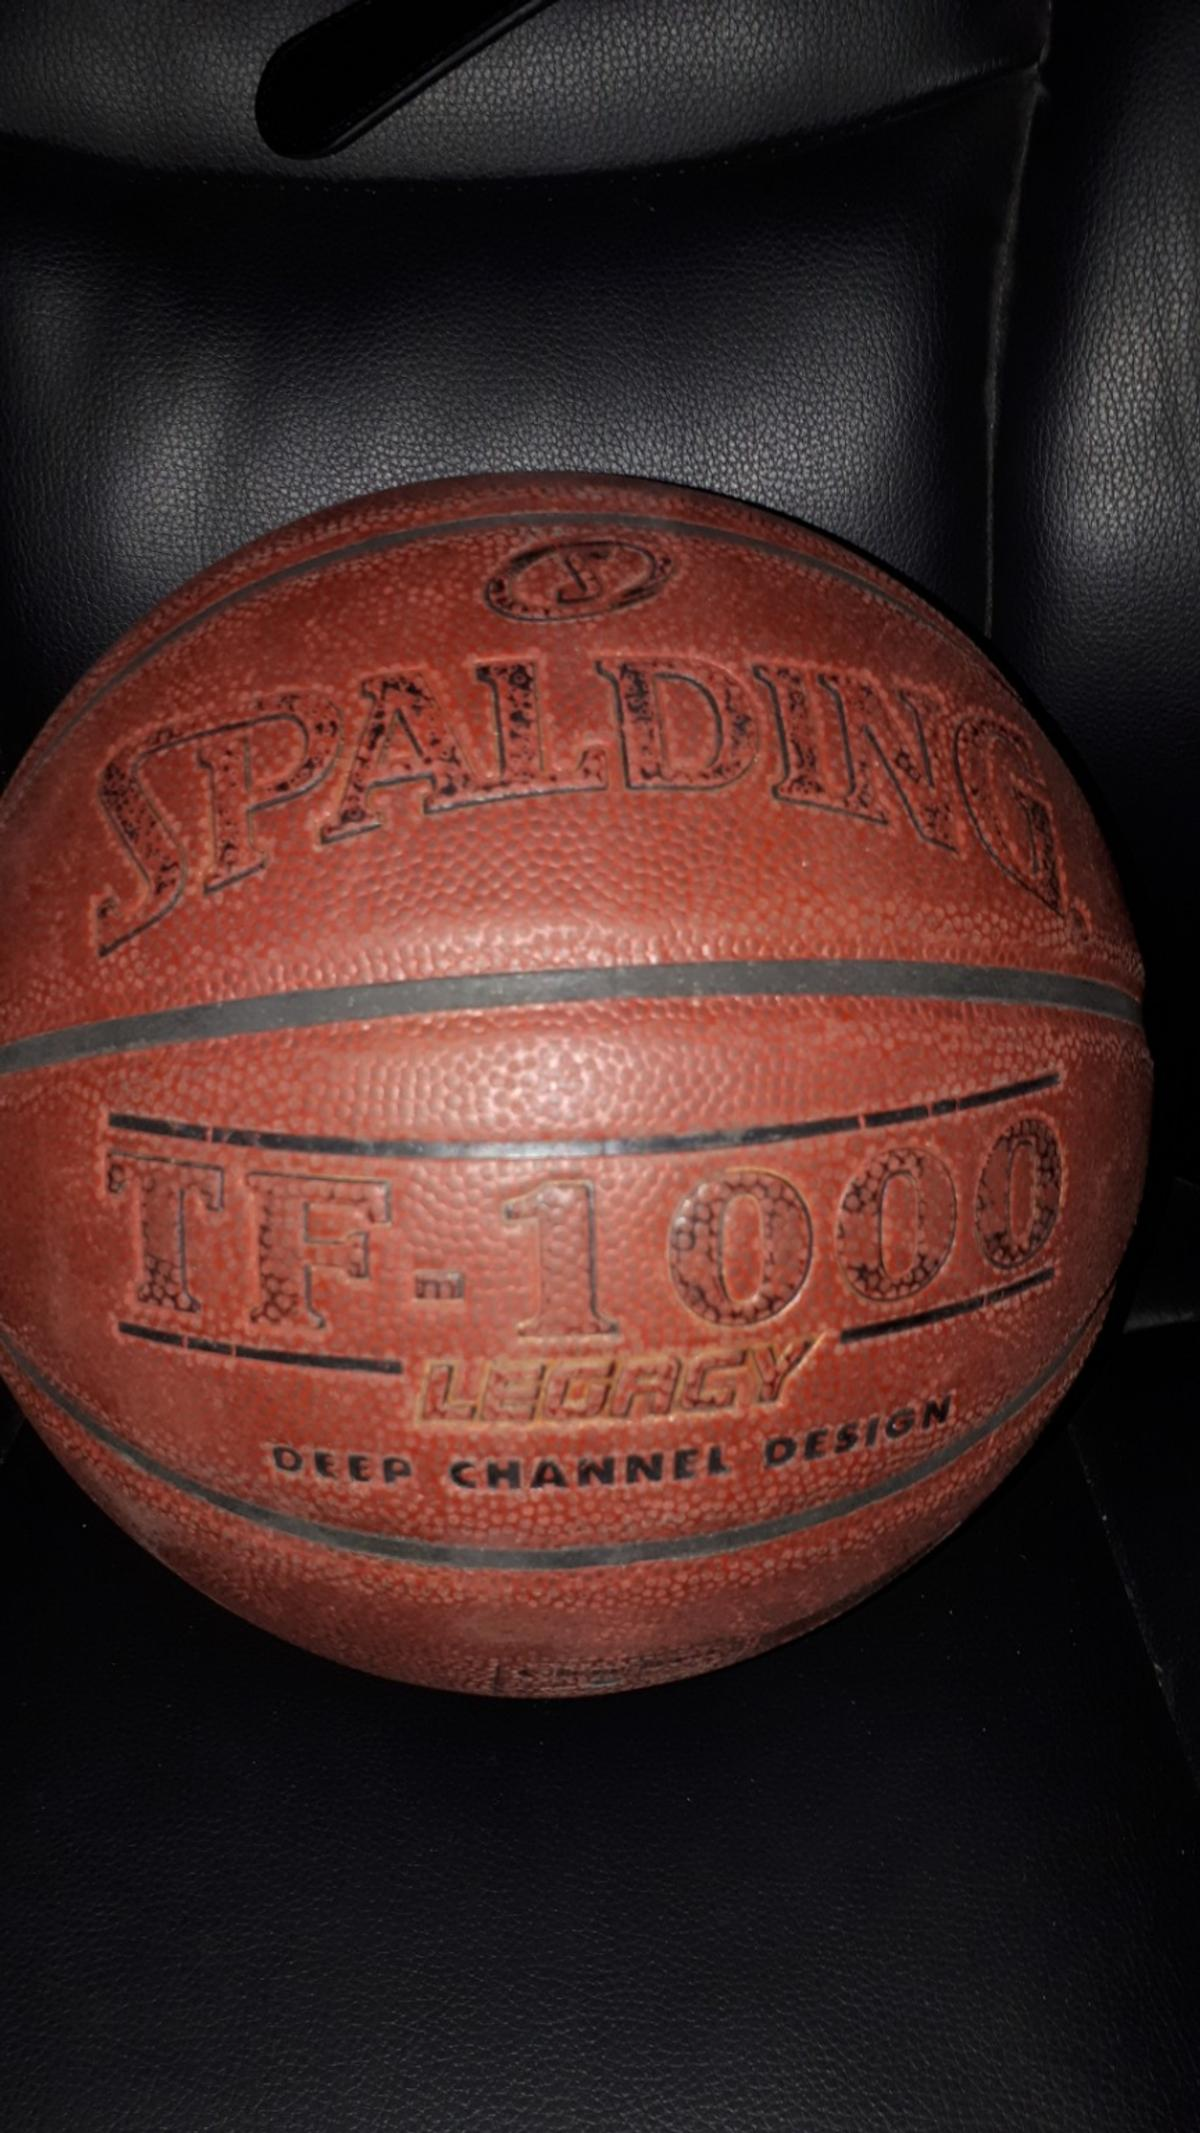 Good quality basketball. used couple times. open to reasonable offers